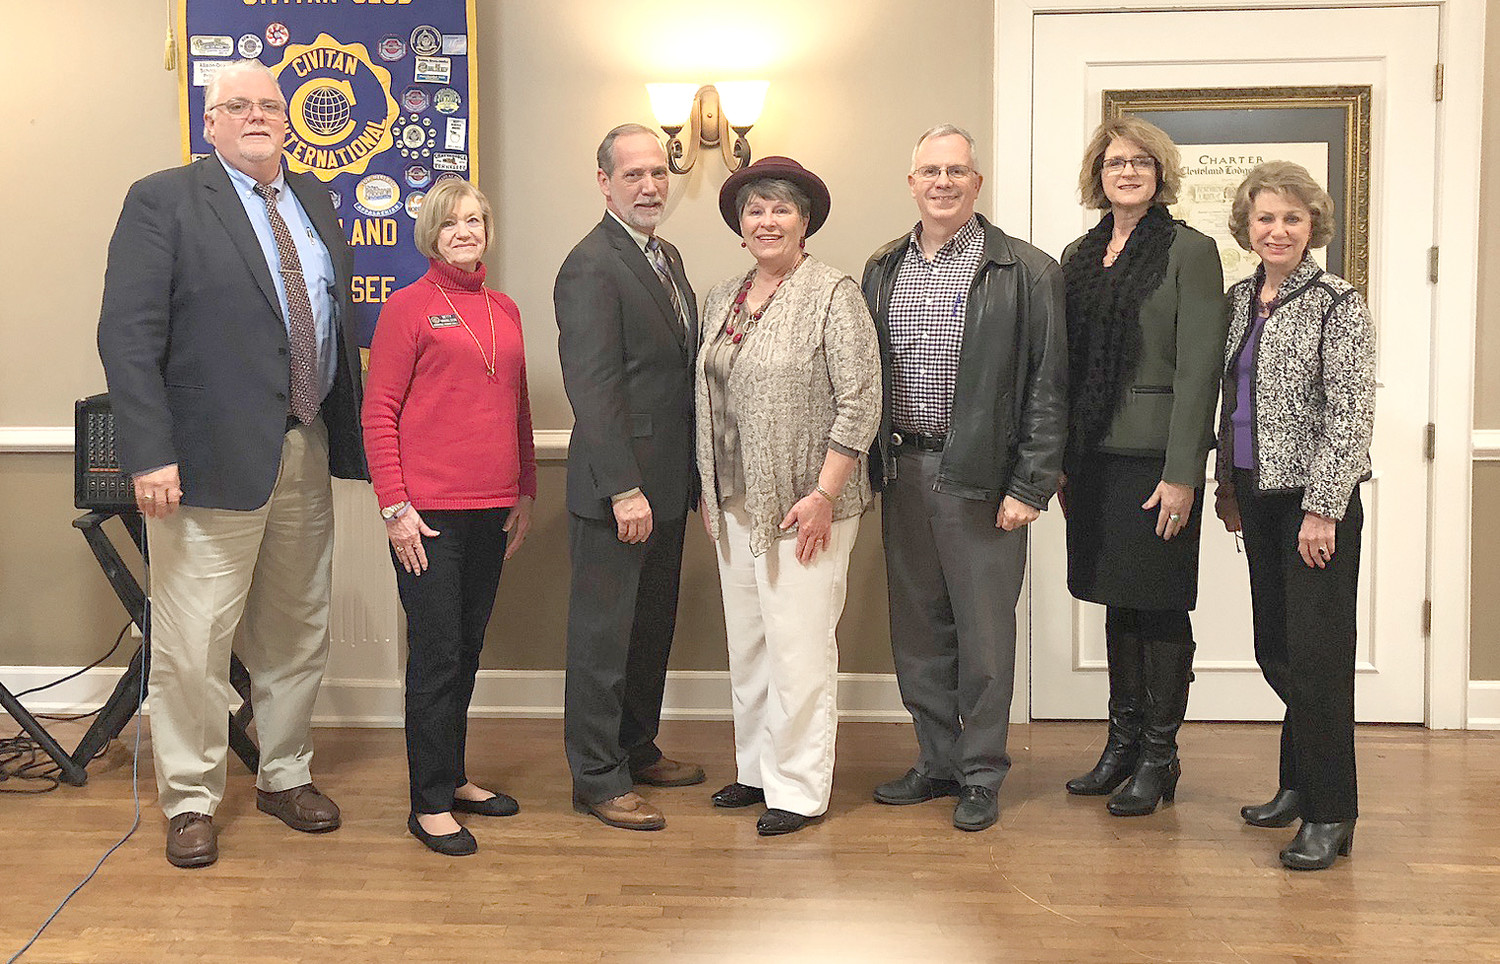 The Cleveland Civitan Club had Bradley County Mayor D. Gary Davis as guest speaker Wednesday. A positive report was given on the state of the Bradley County, with information ranging from Courthouse repairs, local industries and the new industrial park near Interstate 75 Exit 20.  From left are Lindsey Hathcock, Betty Haralson, Davis, Pam Edgemon, Barry Melton, Teresa Davis and Linda Wheeler.